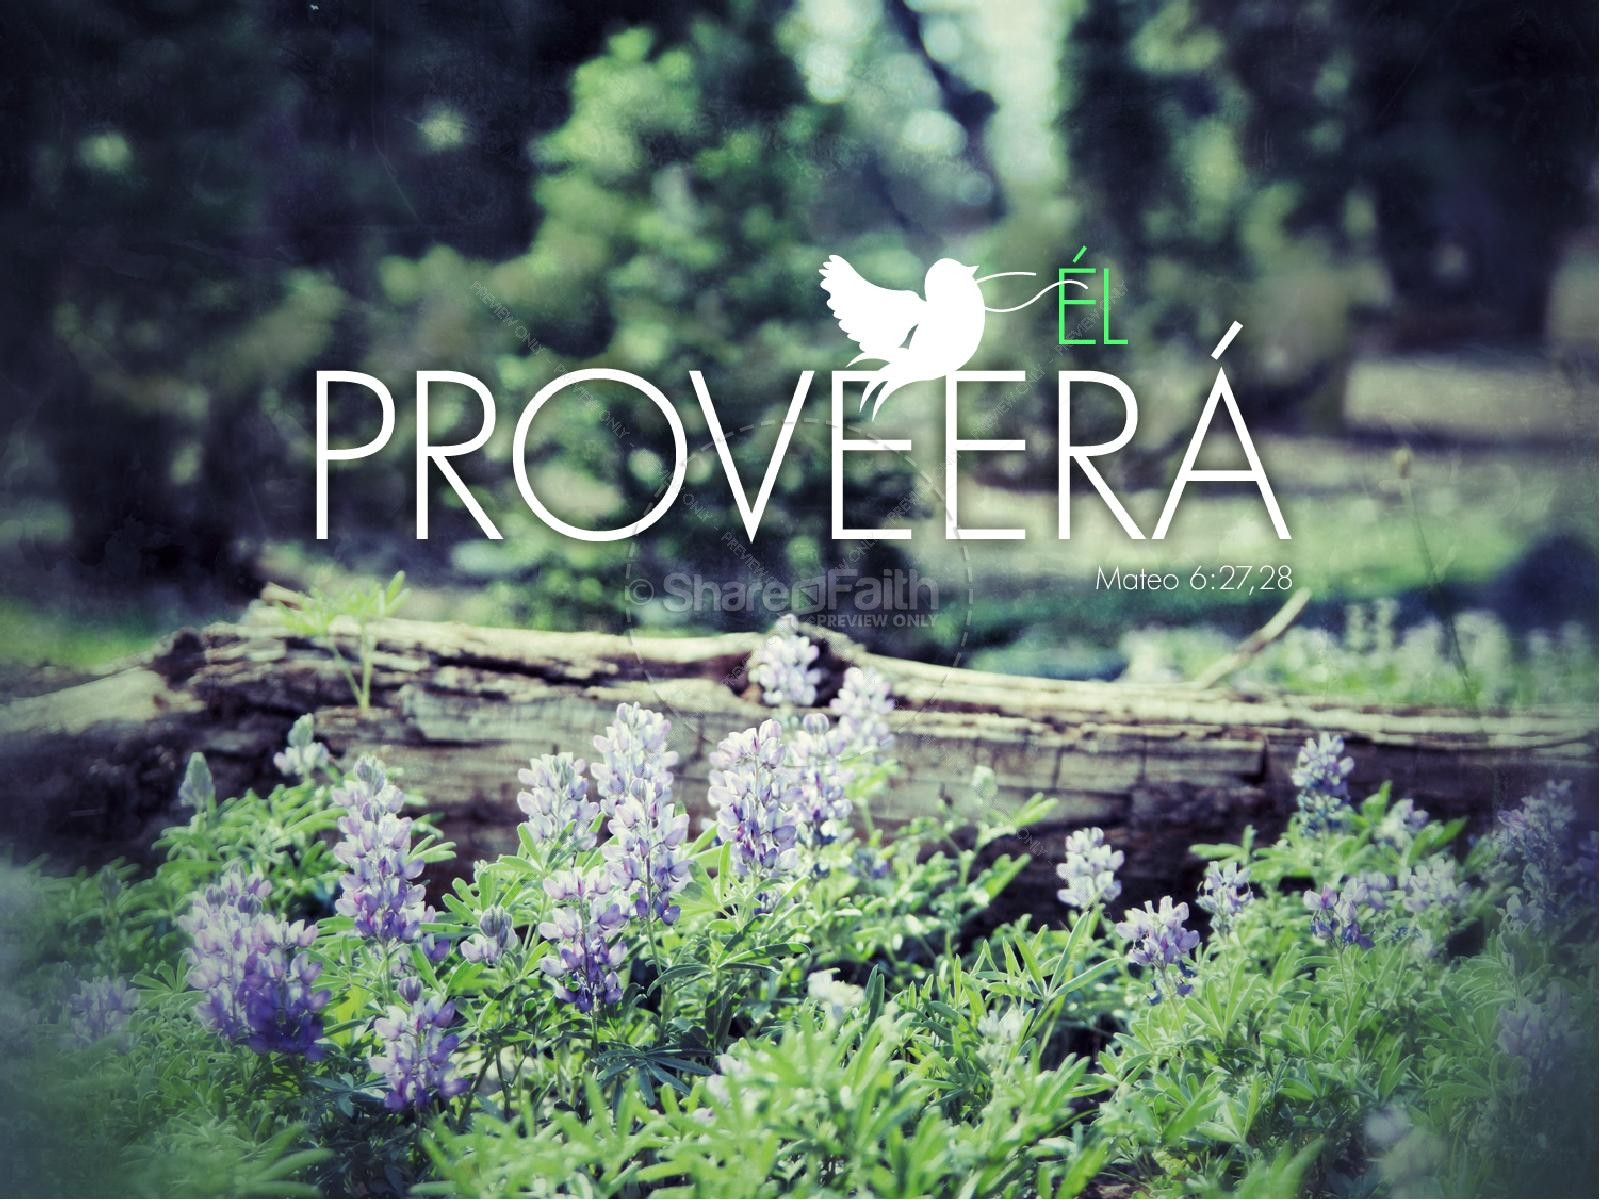 El Proveera Church PowerPoint